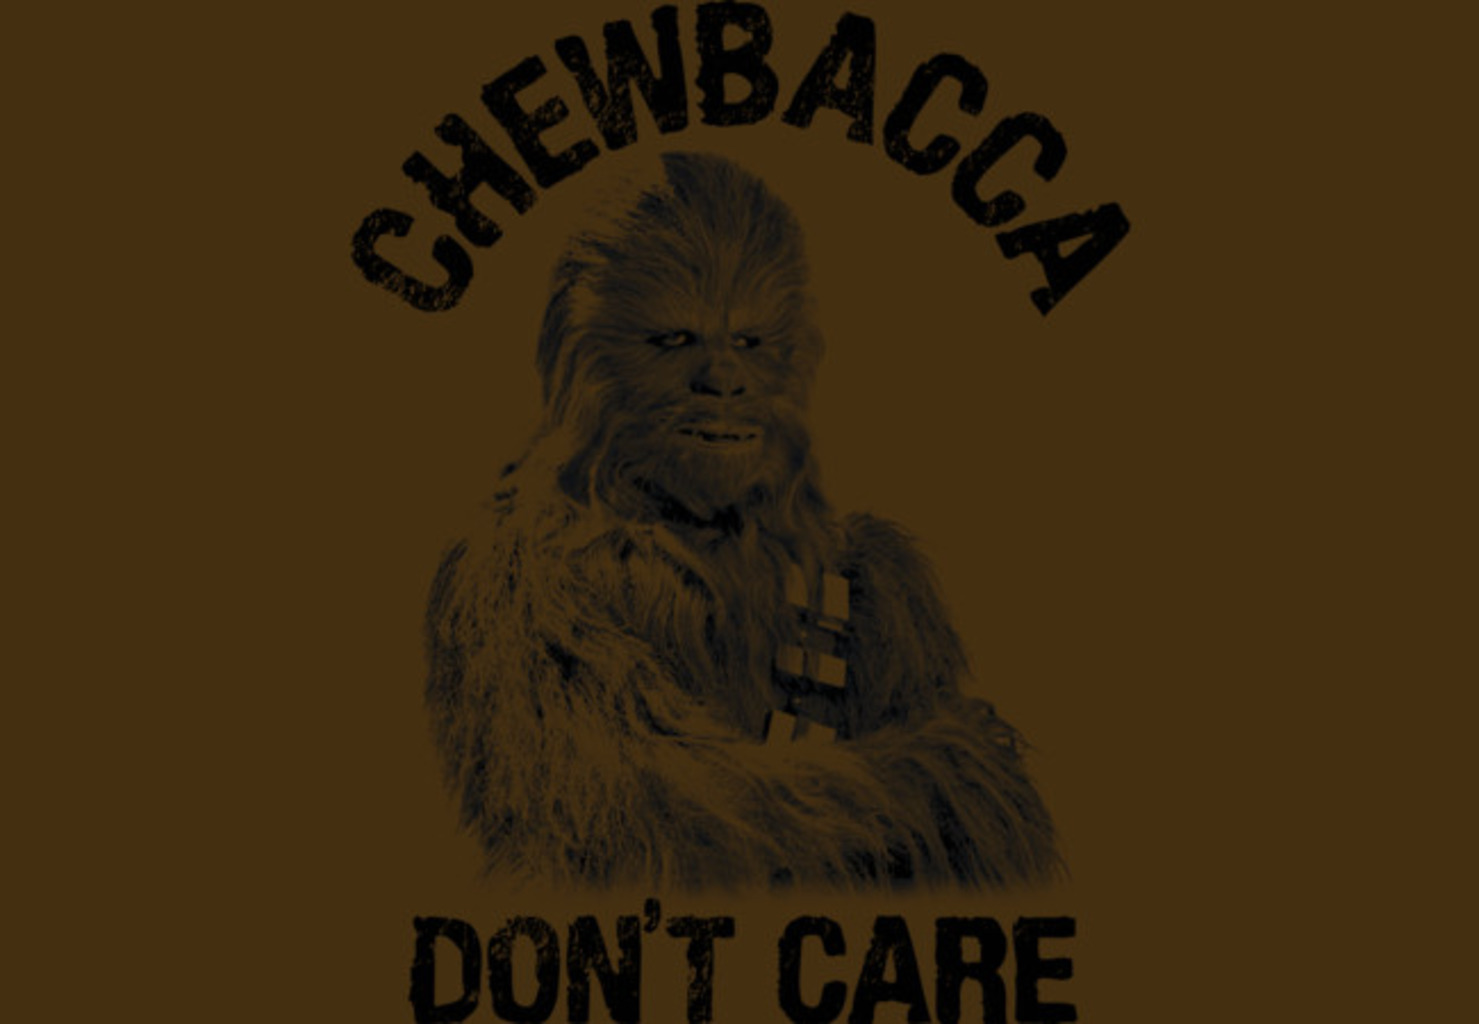 Design by Humans: Chewbacca Don't Care